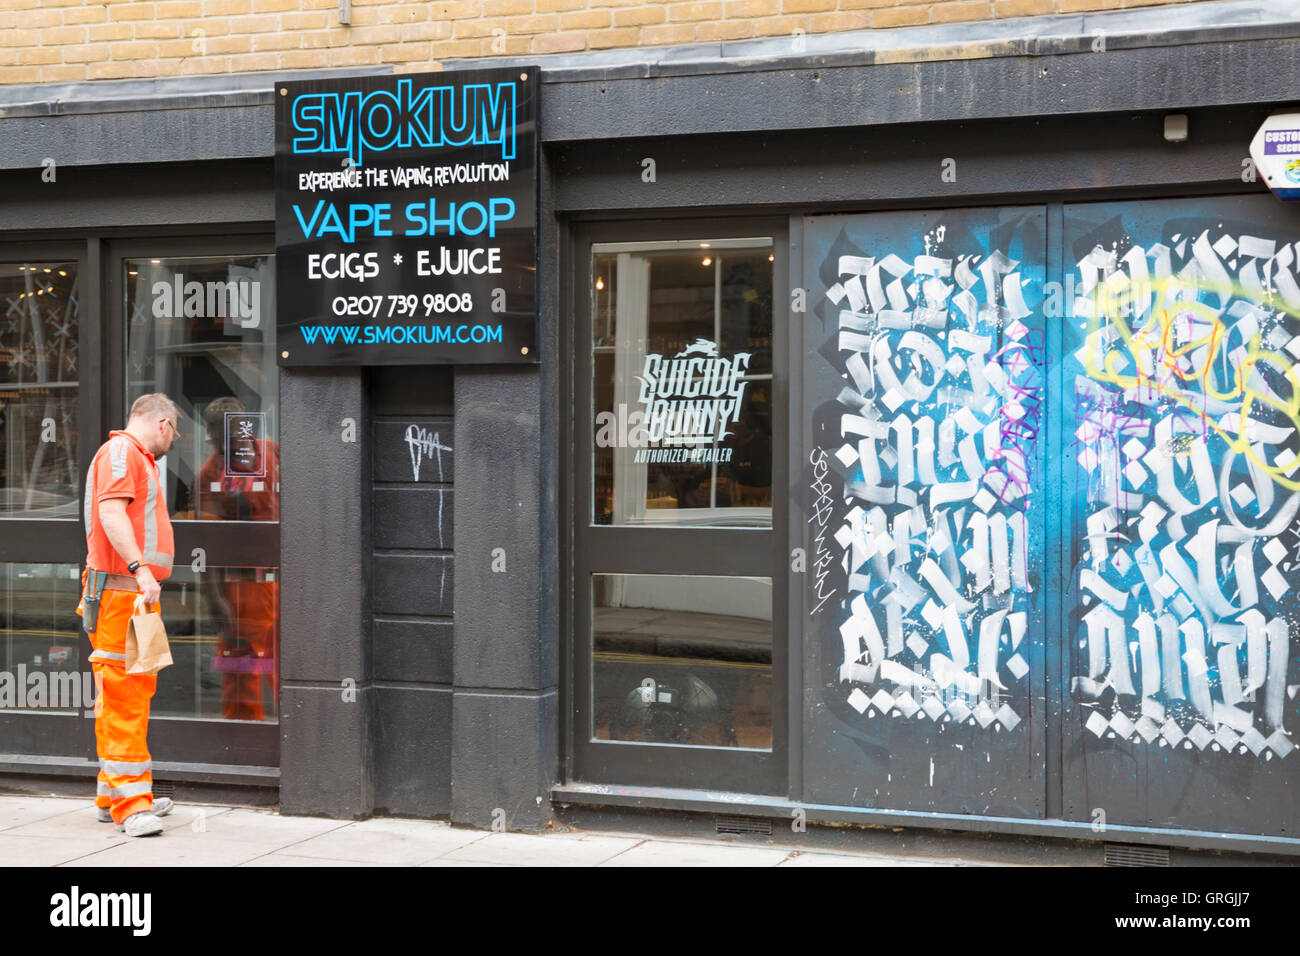 Smokium Shoreditch Vape Shop, Cheshire Street, Shoreditch, London in September - experience the vaping revolution - Stock Image